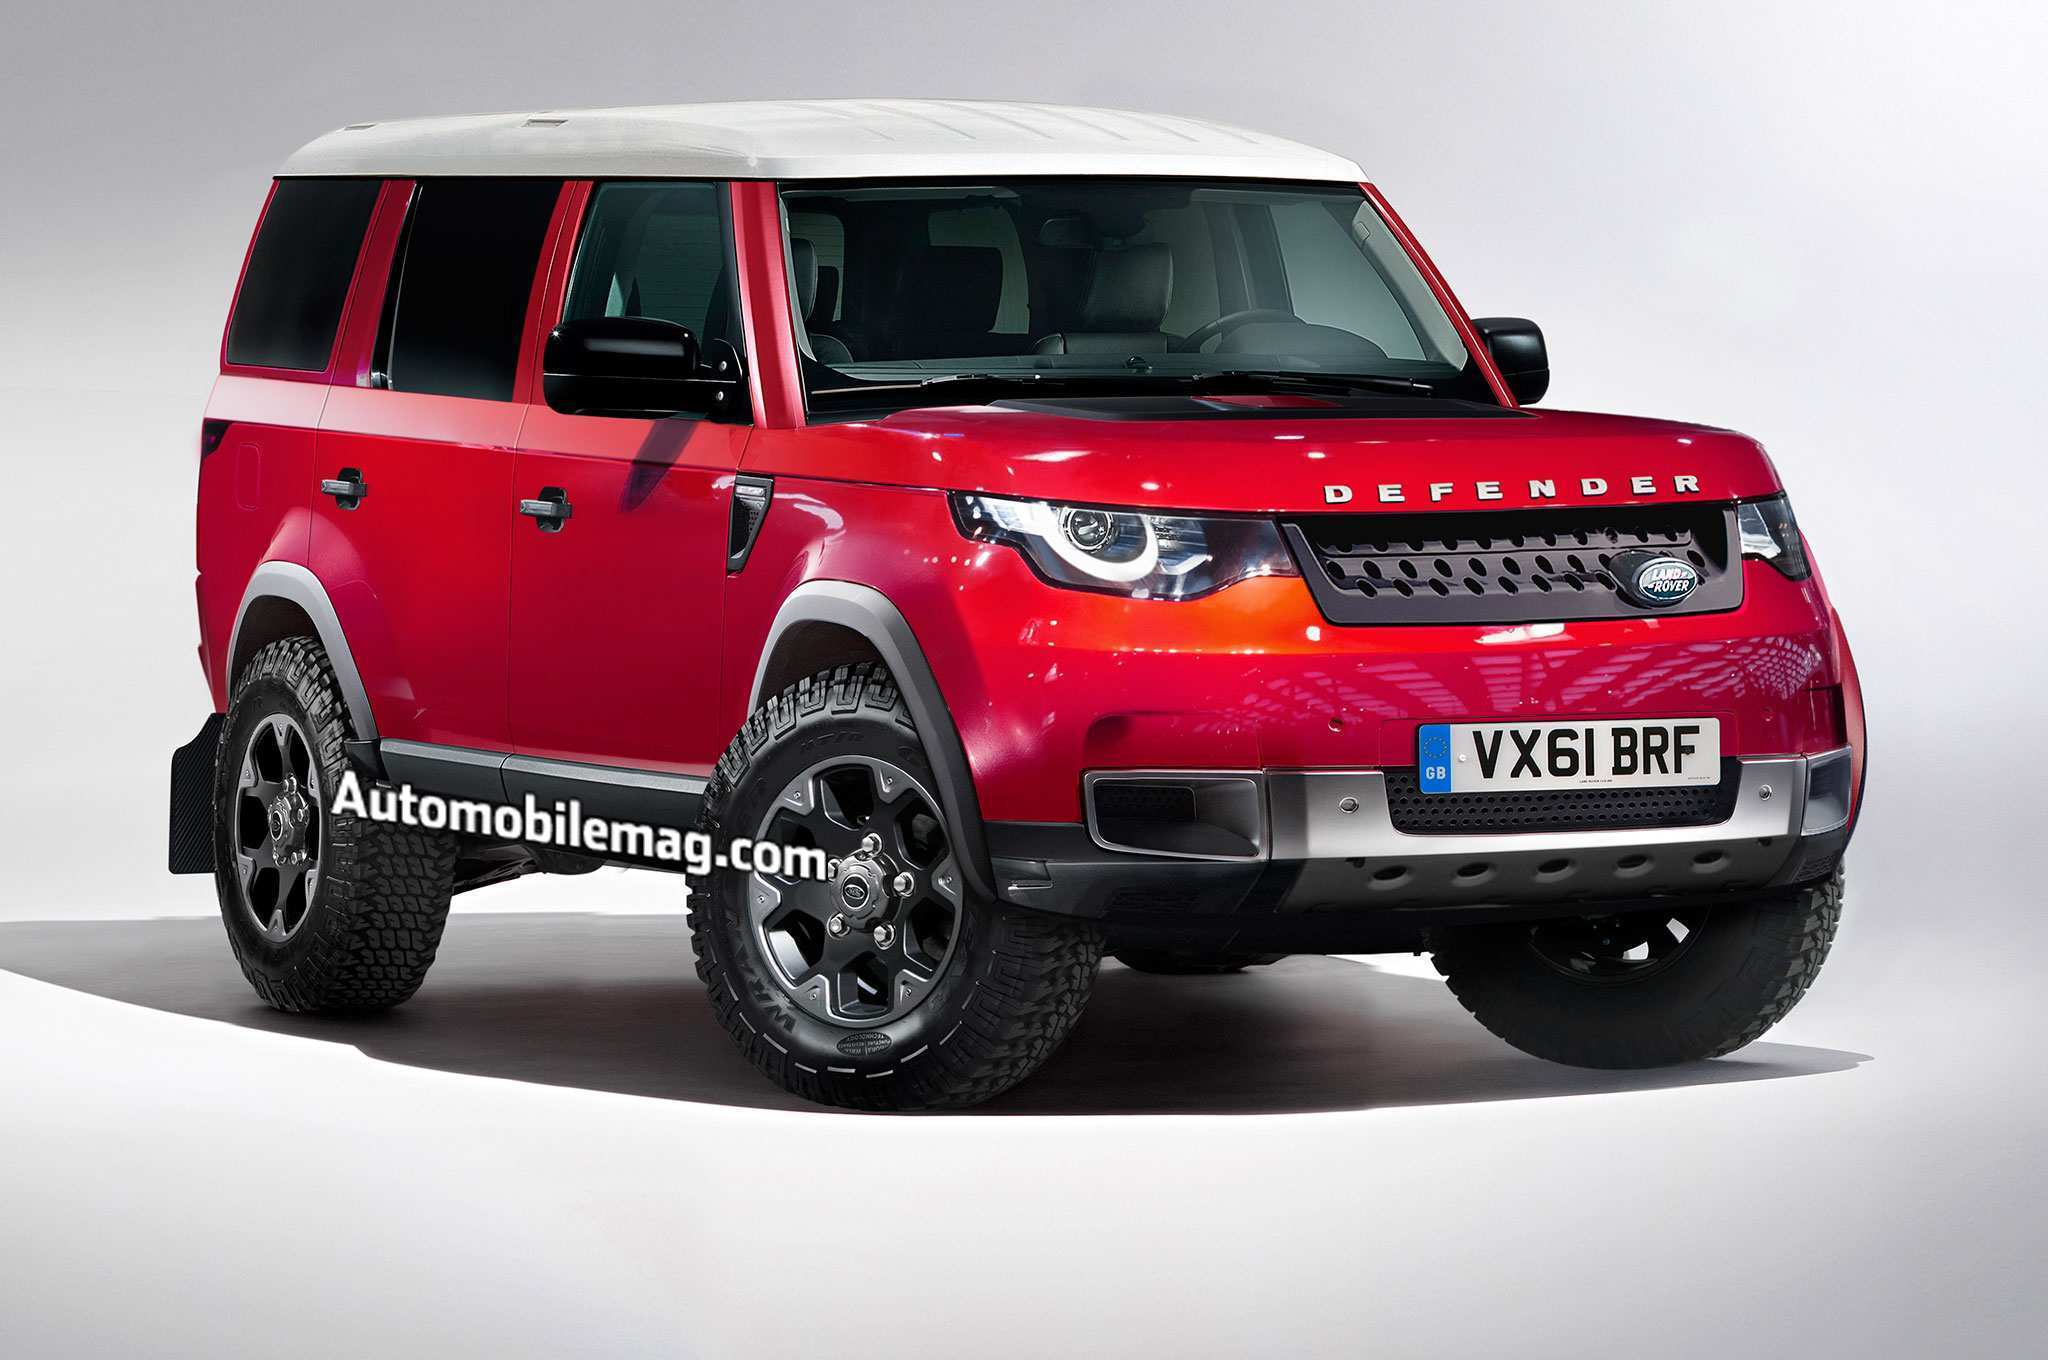 84 Great Land Rover Pickup 2019 New Review for Land Rover Pickup 2019